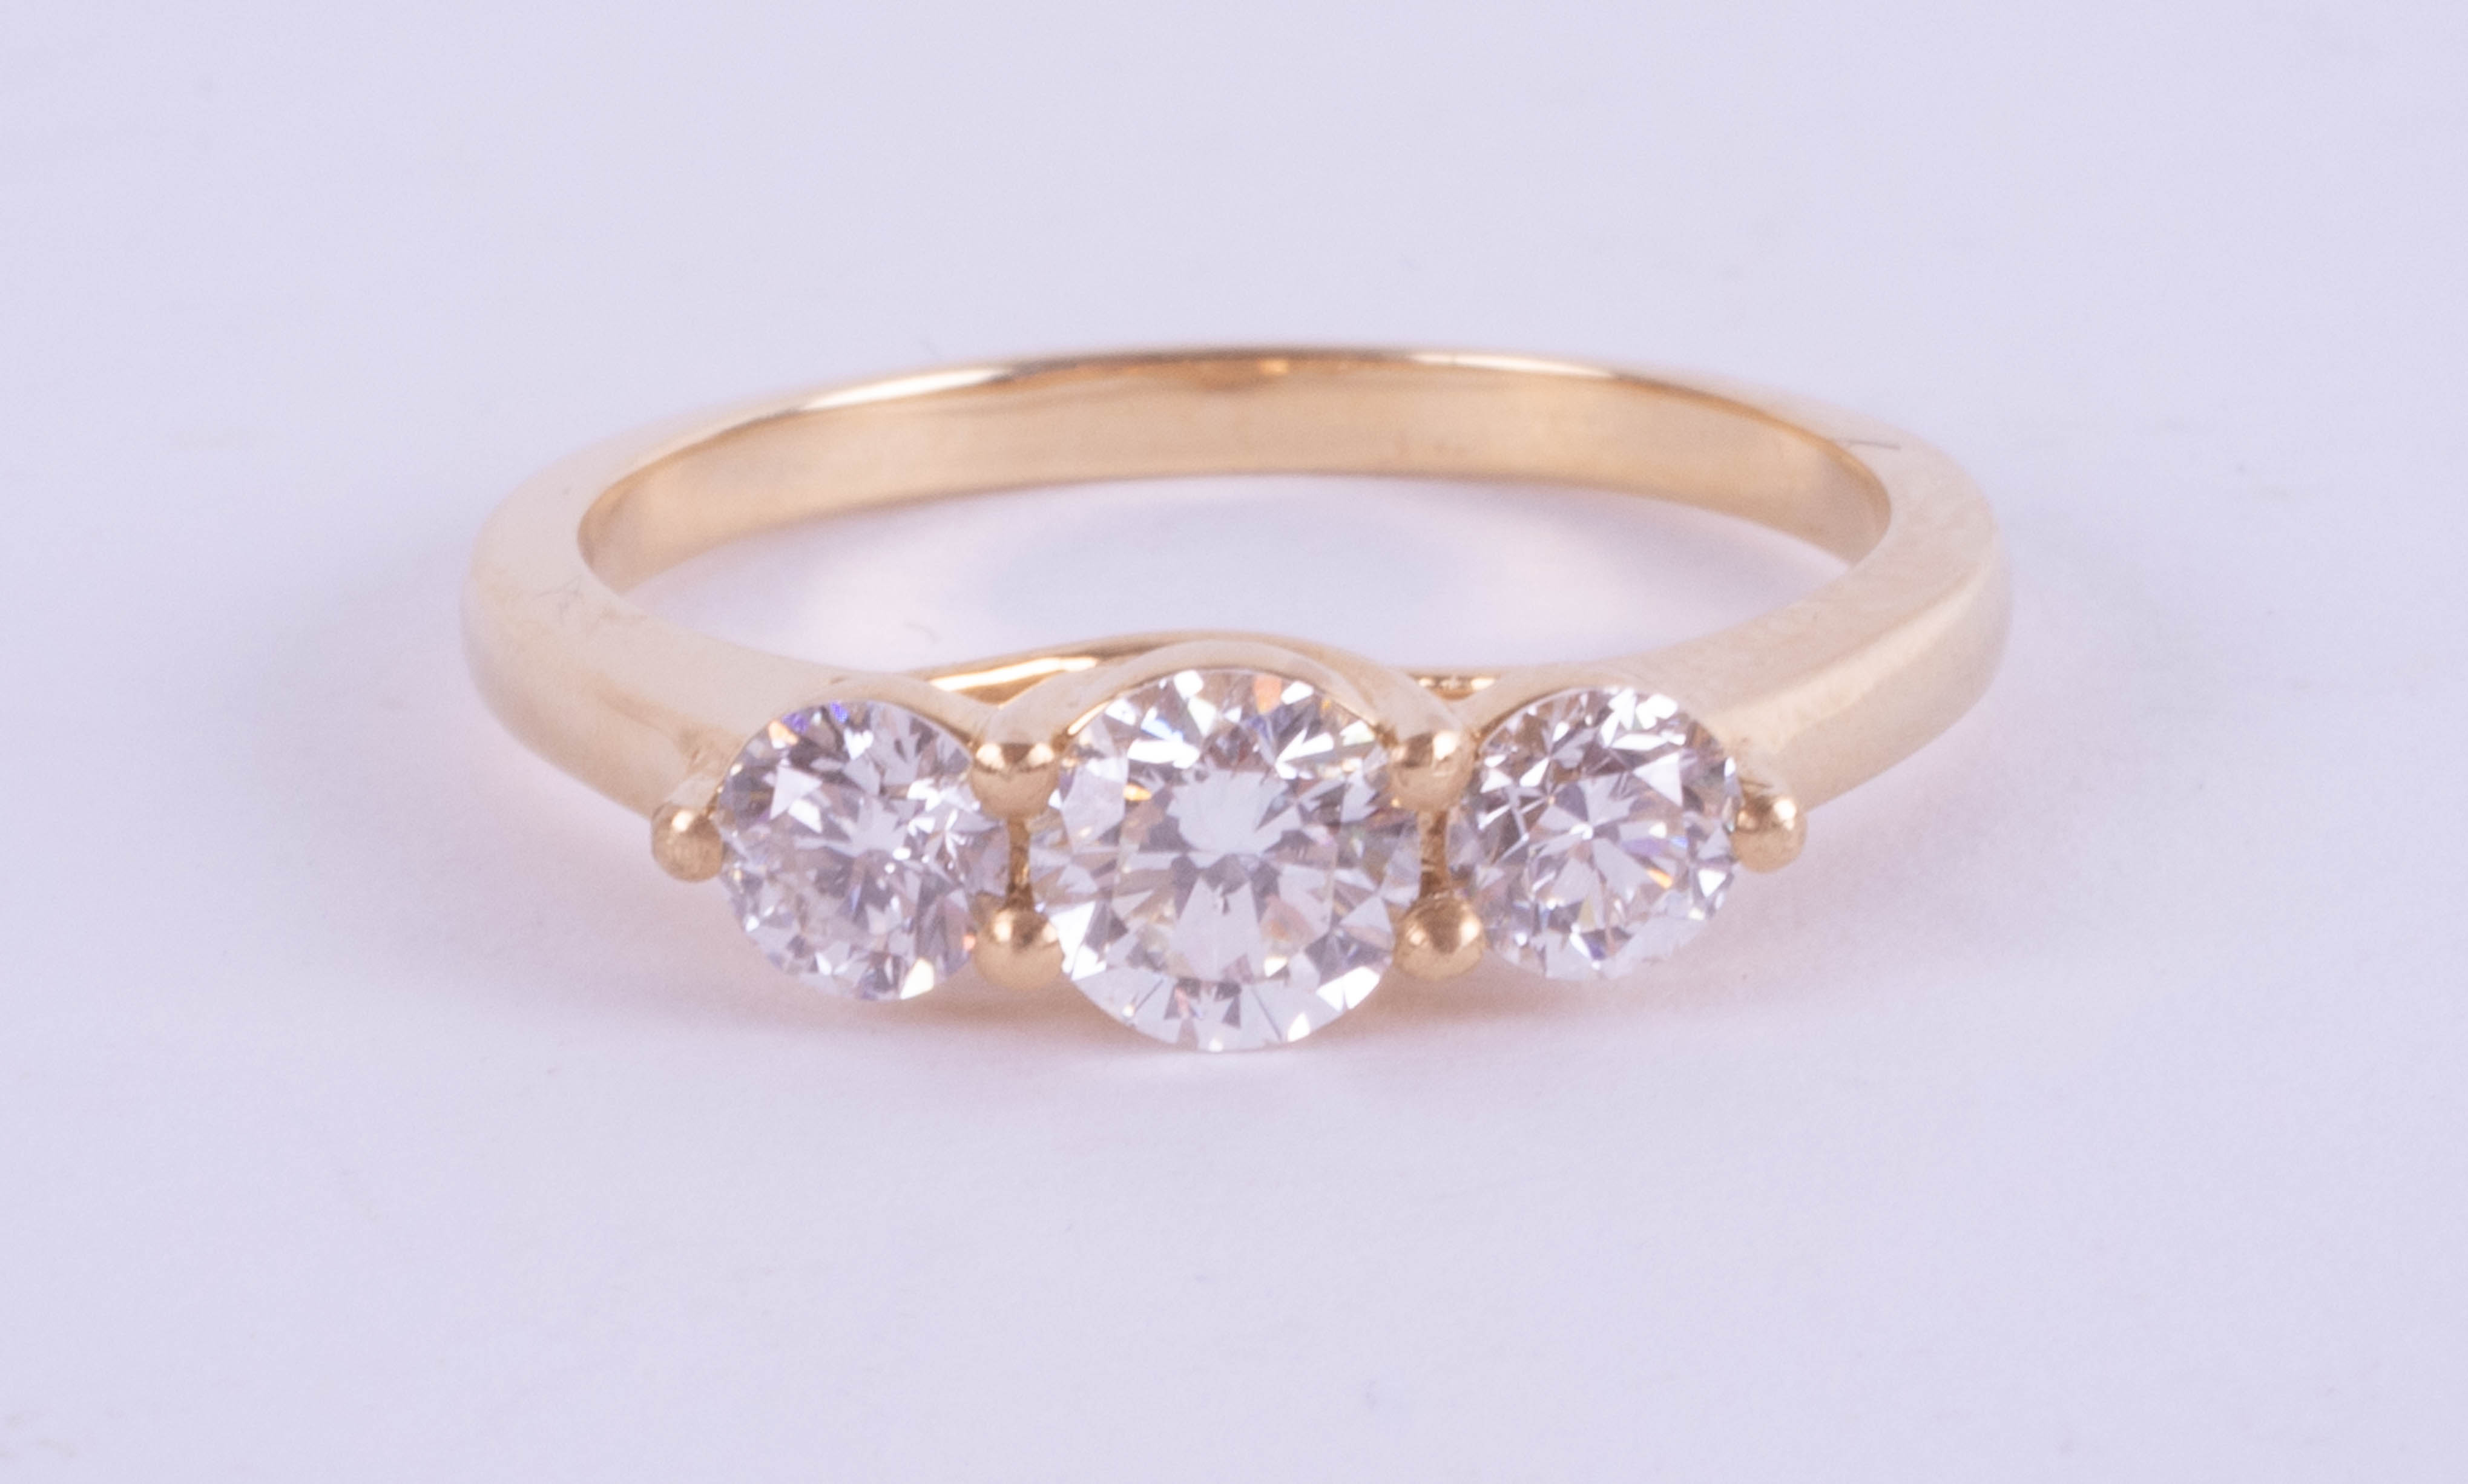 An 18ct yellow gold trilogy ring approx. 0.80ct, estimated colour E, clarity SI1, ring size M.